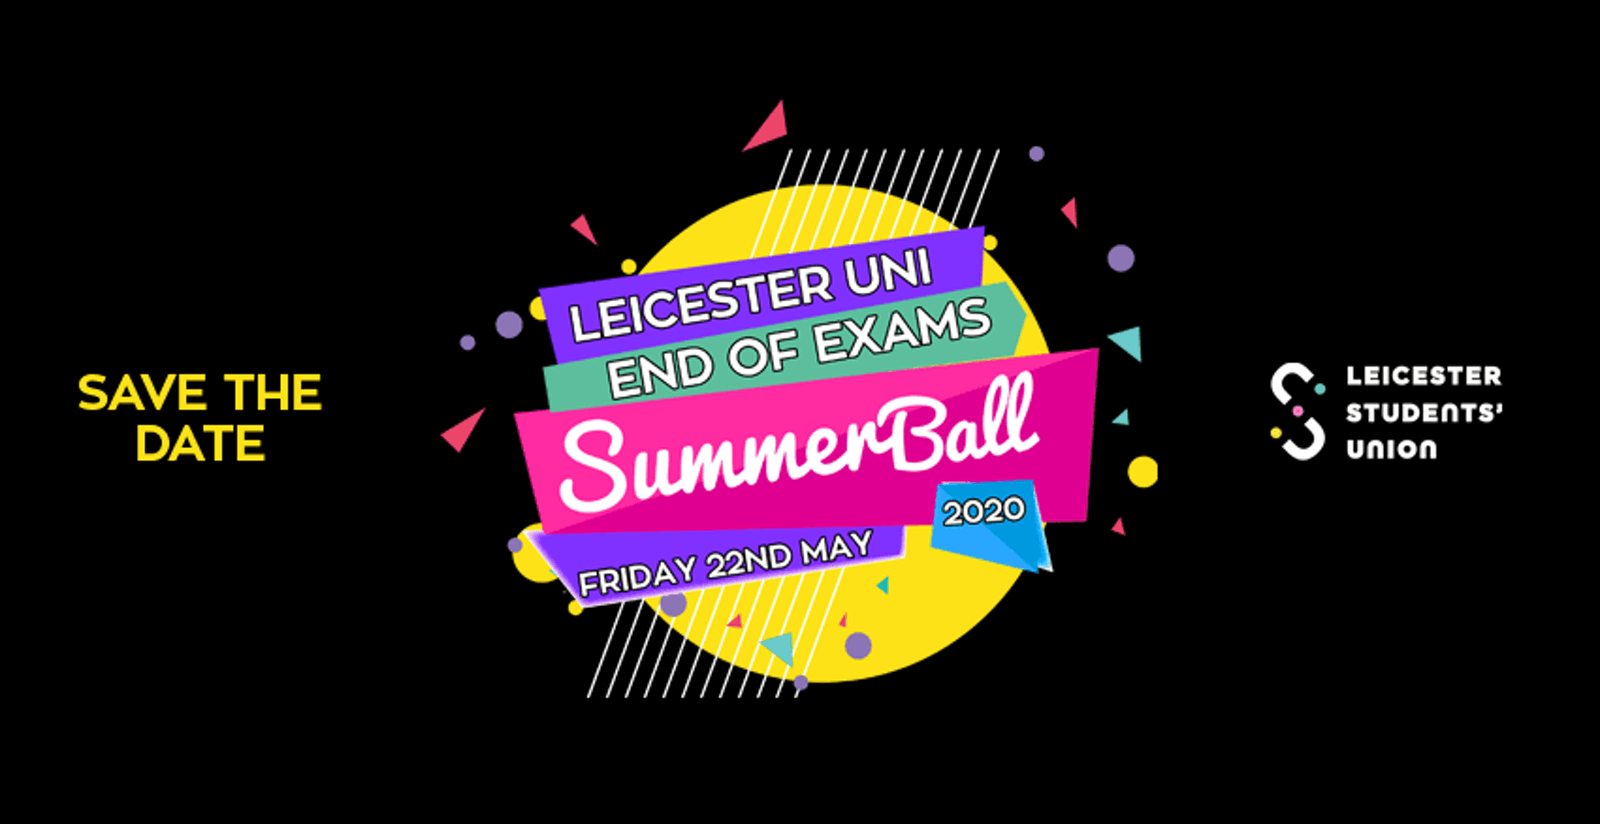 Leicester Uni End of Exams Summer Ball! Friday 22nd May.